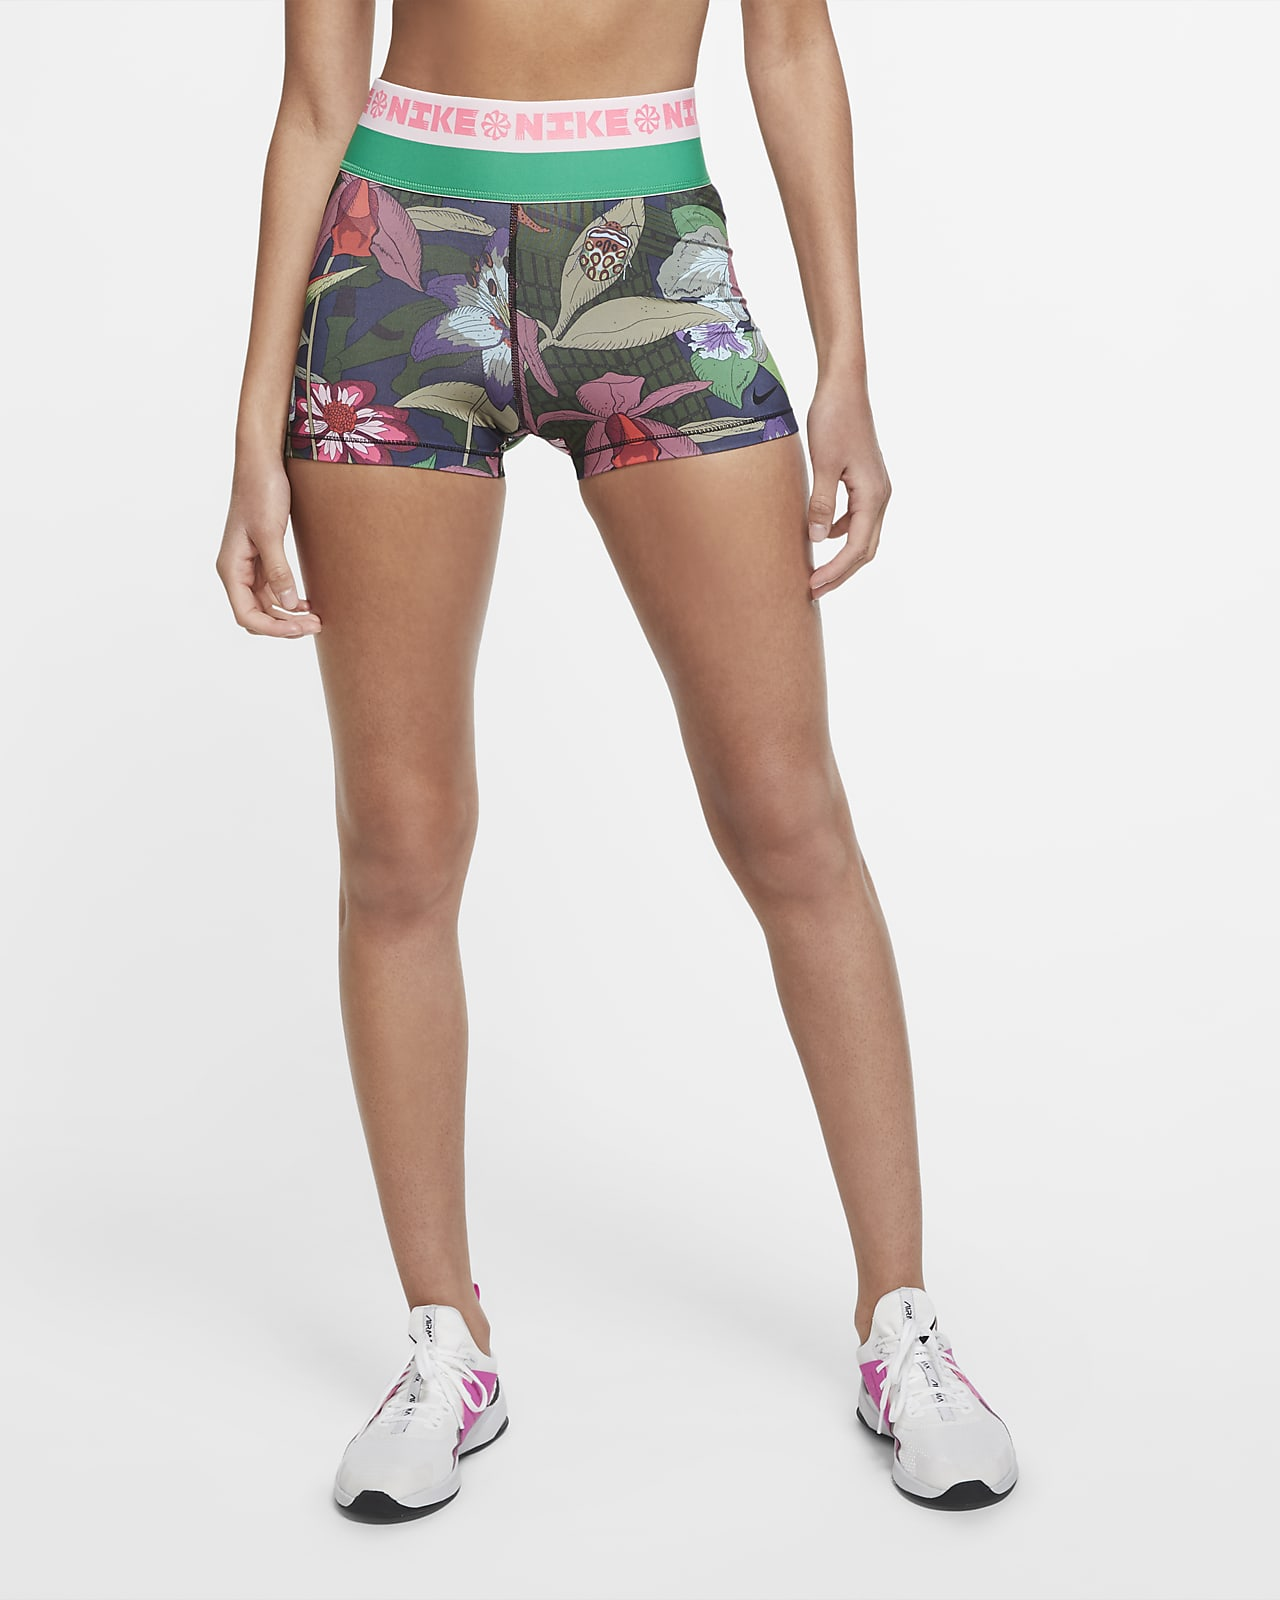 Nike Icon Clash Women's 8cm (approx.) Printed Training Shorts